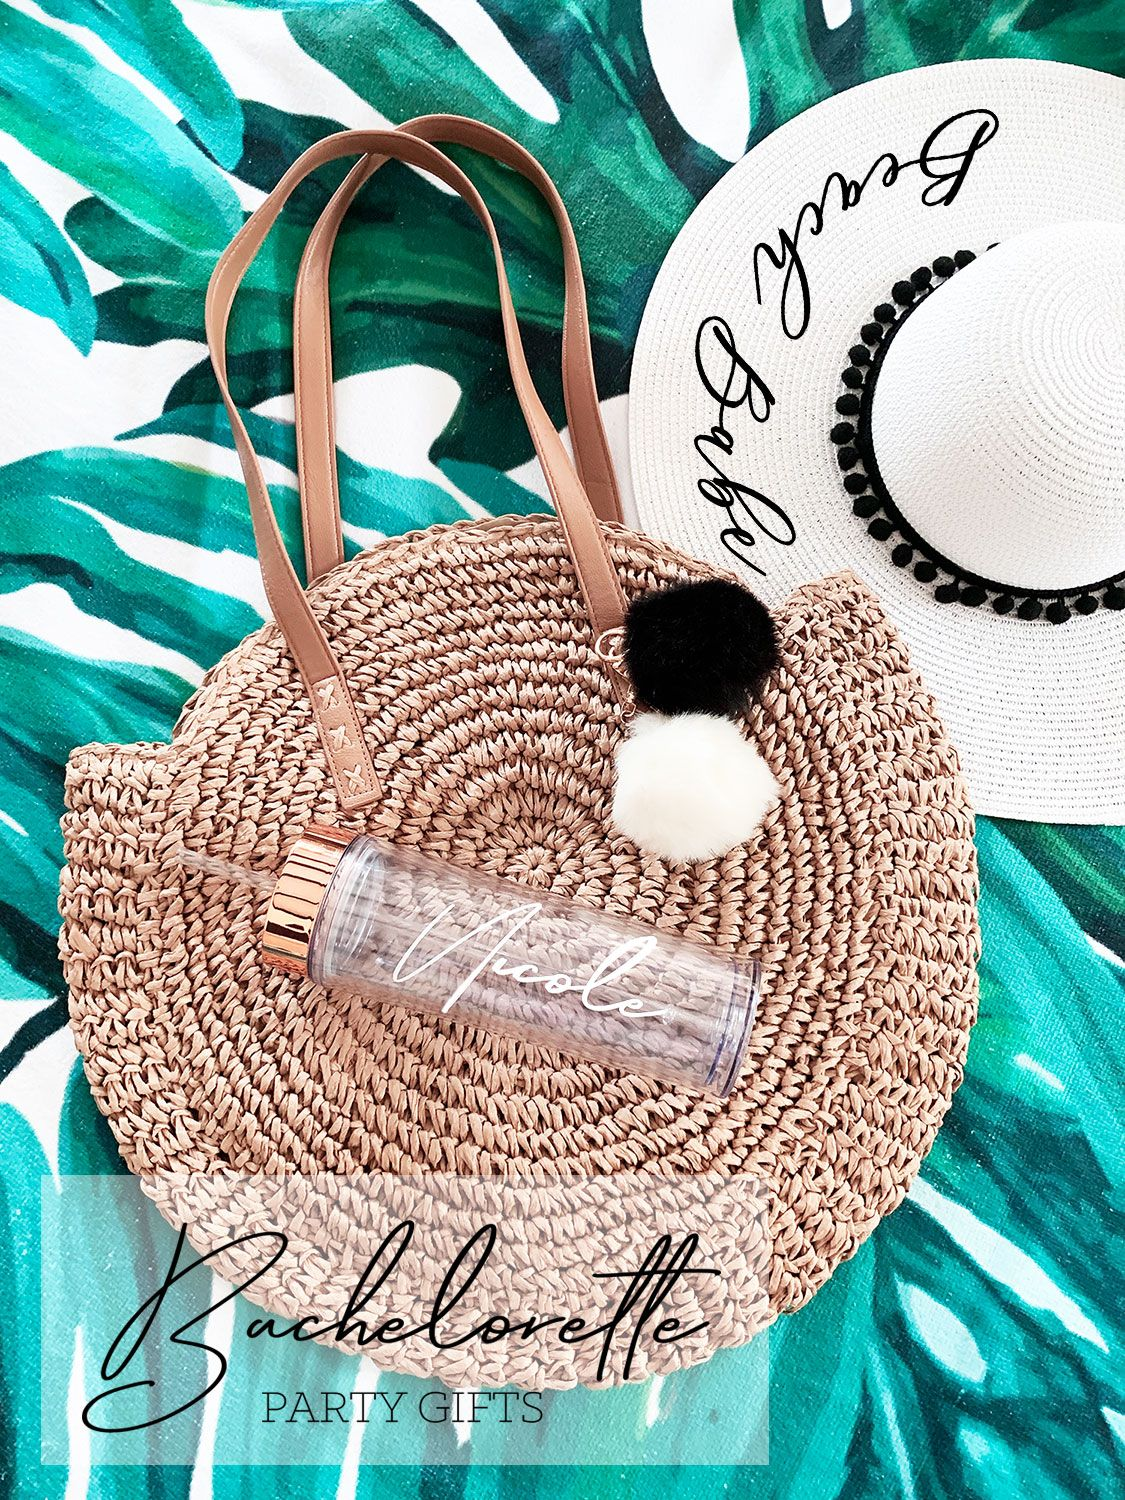 Bachelorette party gifts favors for your bridesmaids to